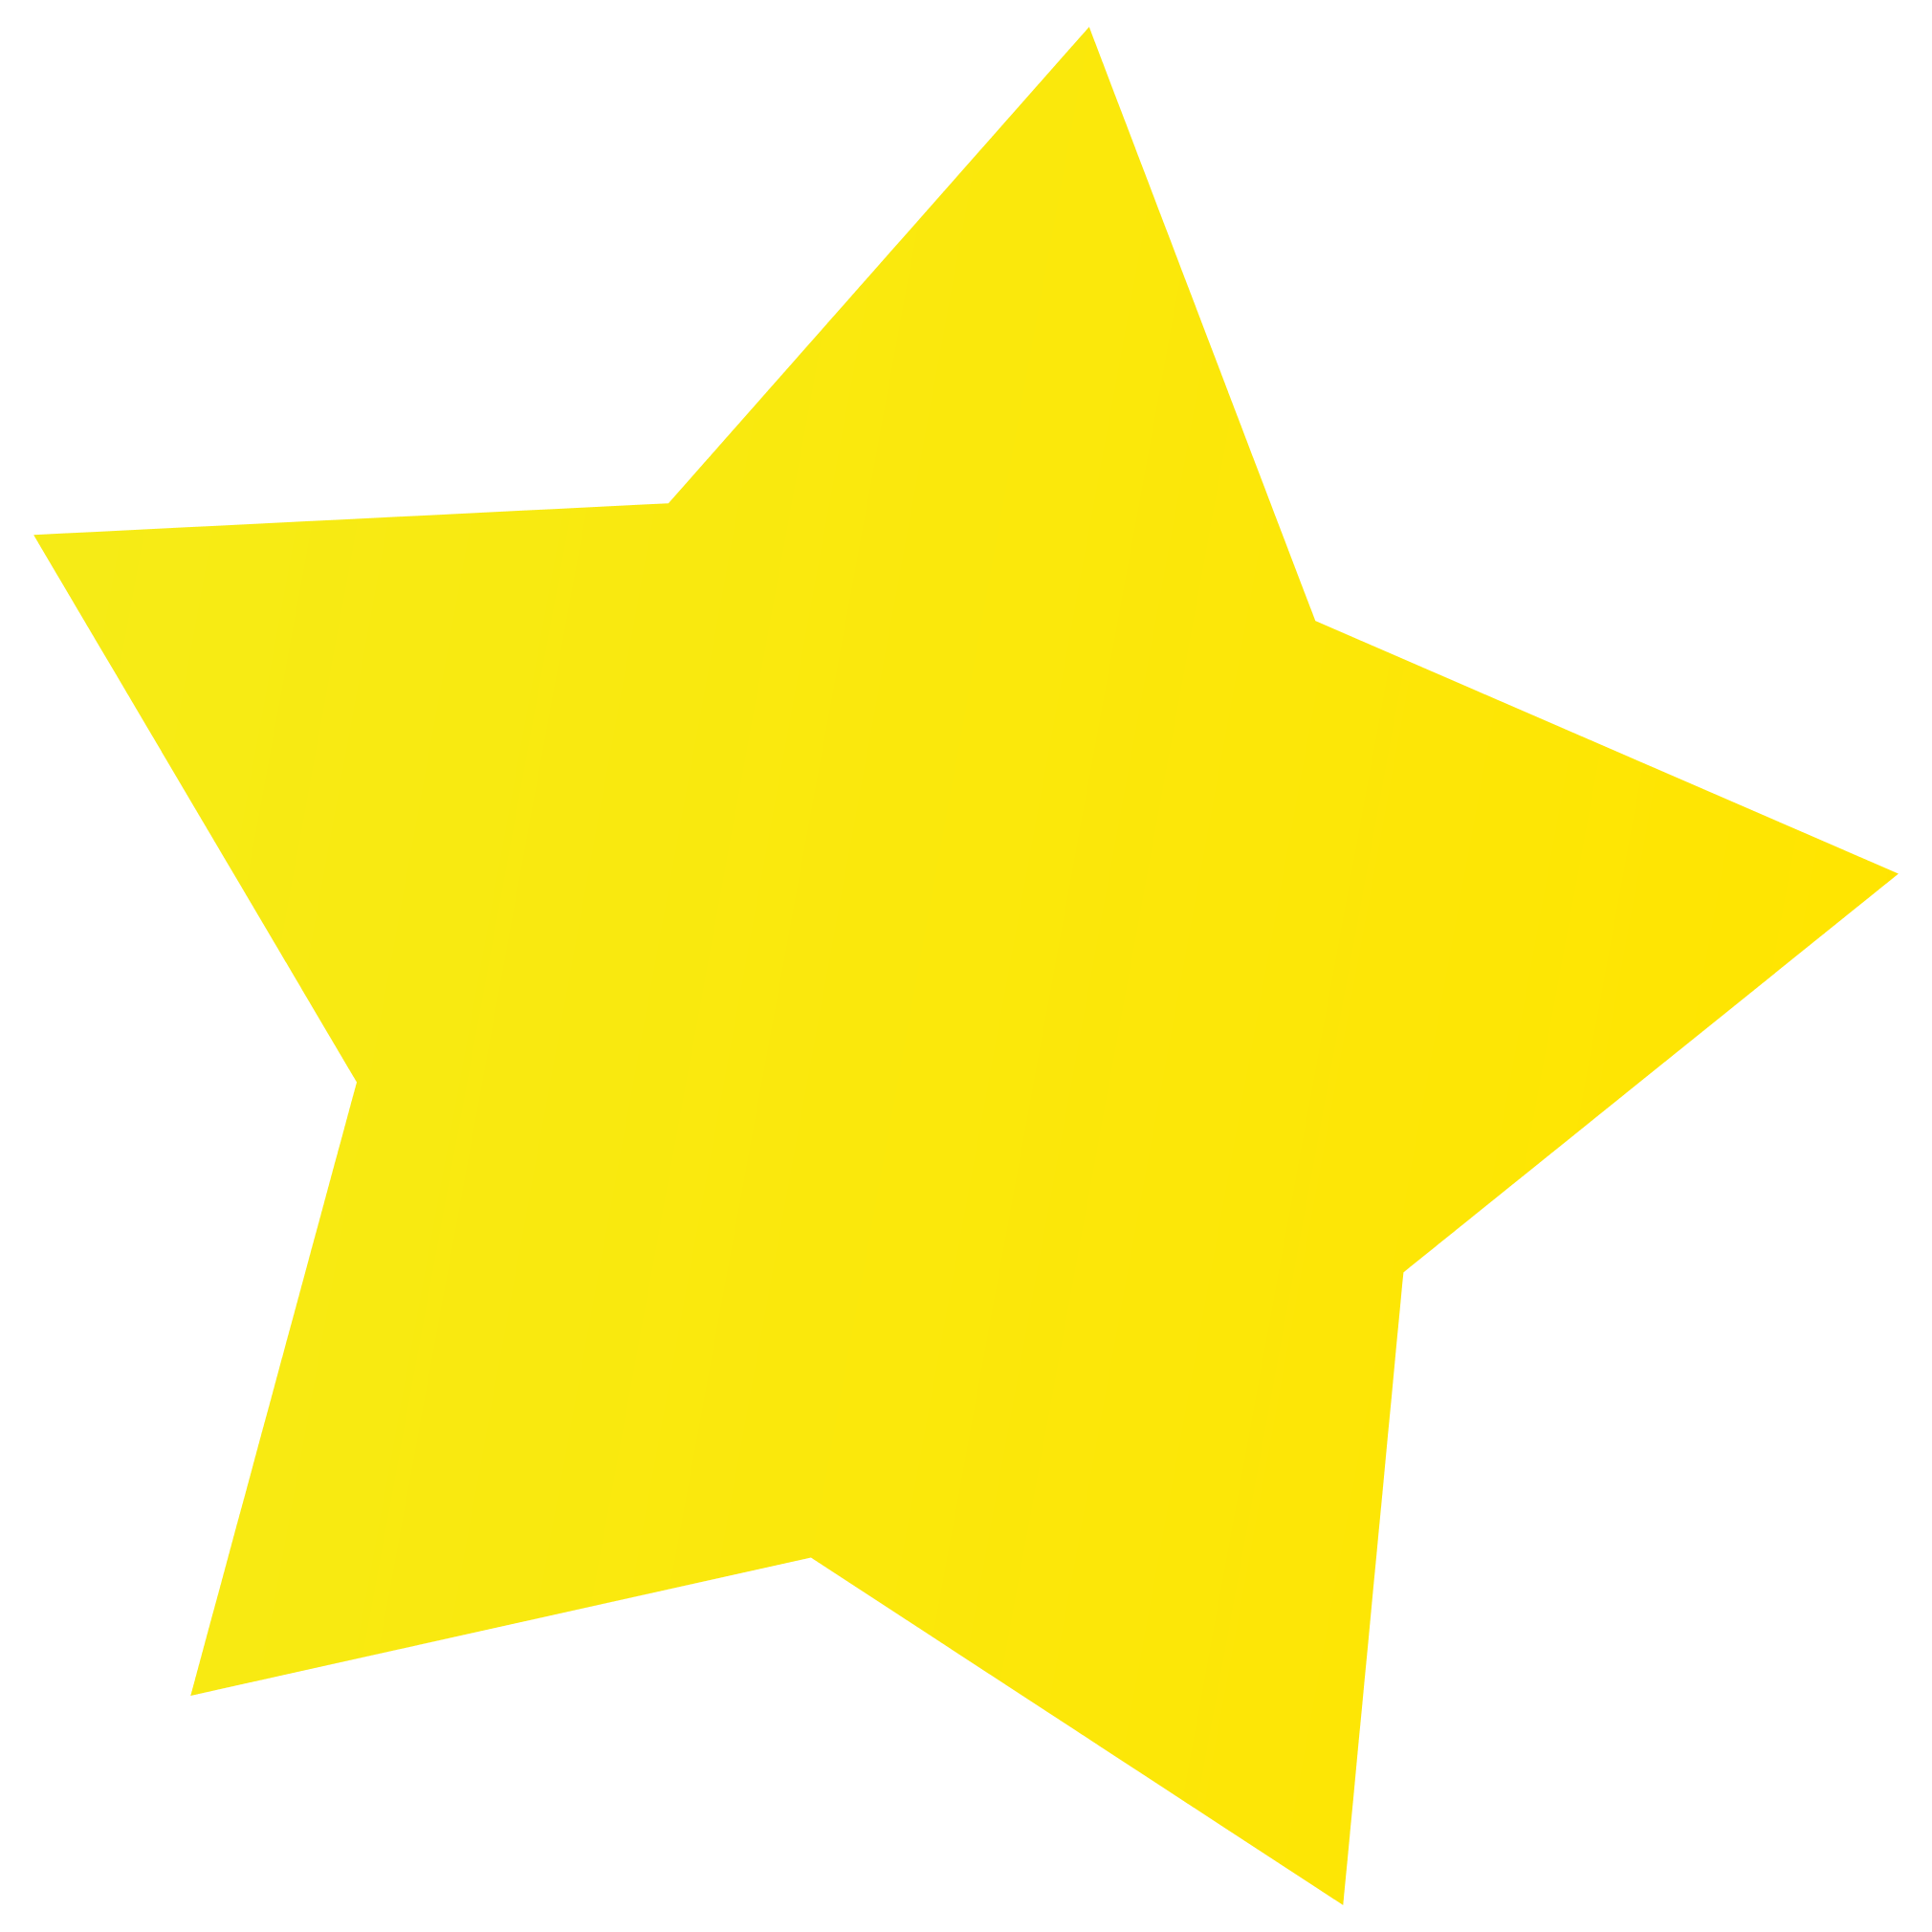 image black and white Art star png clipart. Stars clip transparent background